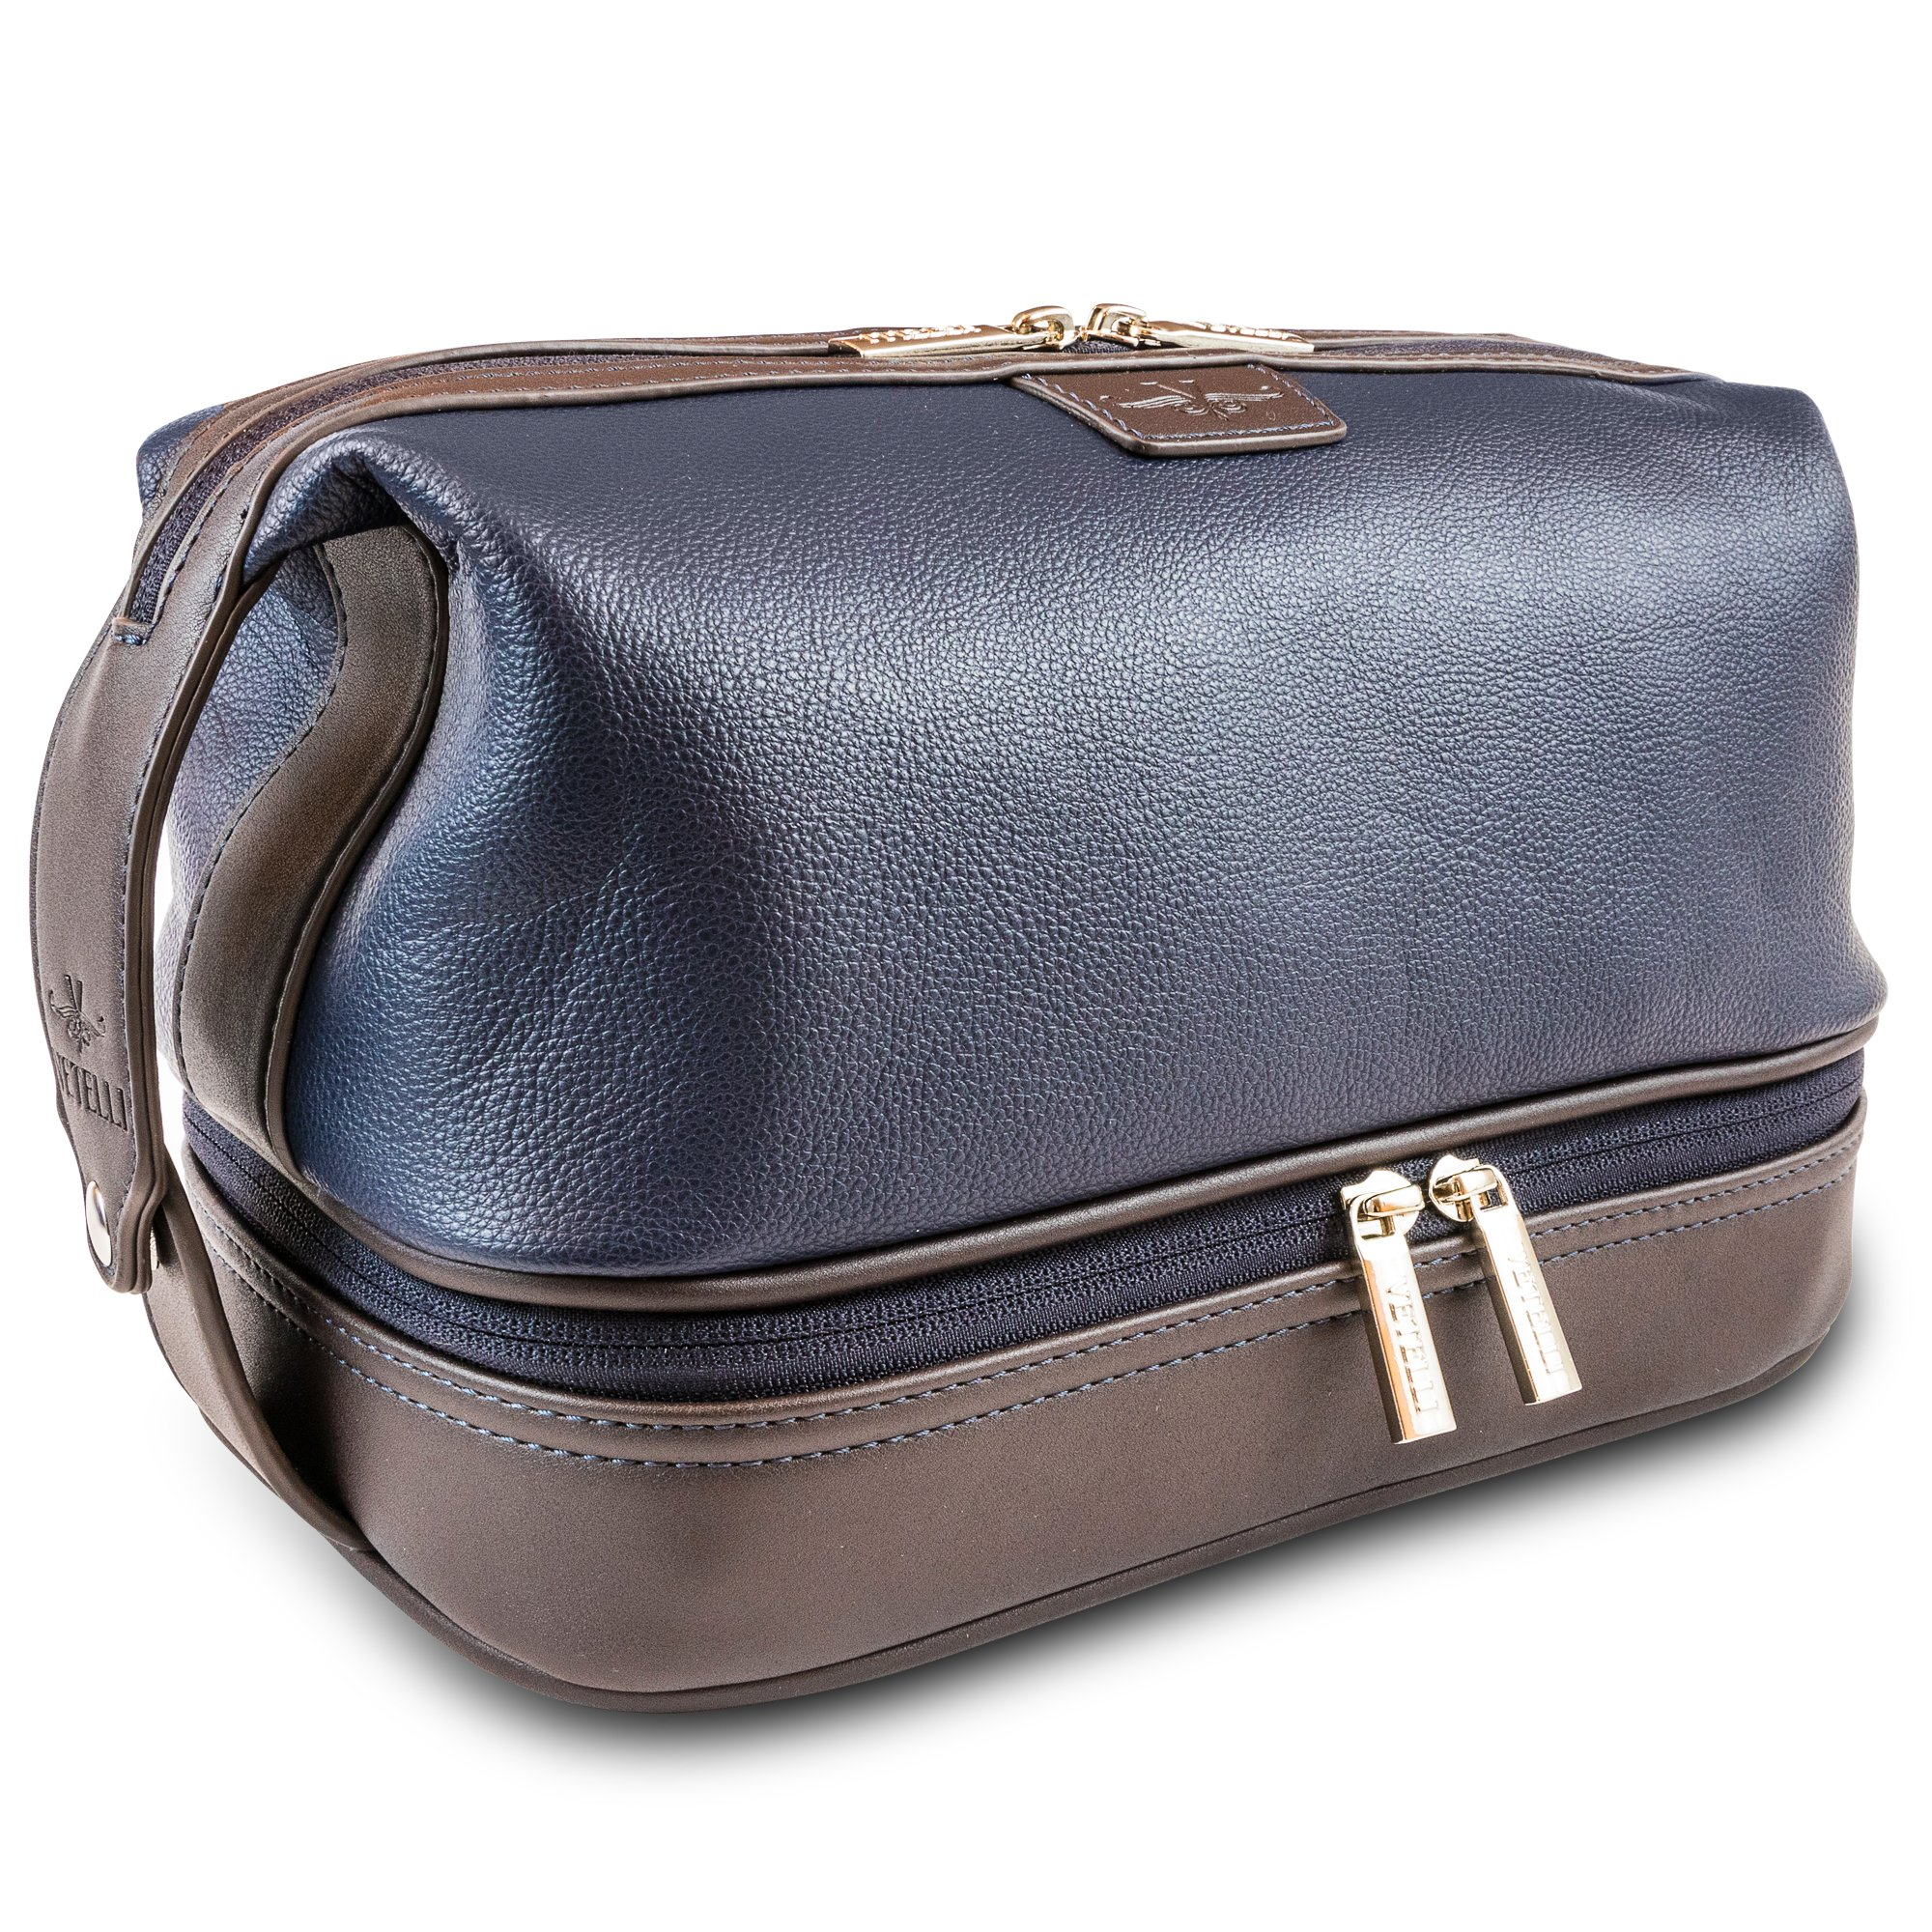 Vetelli Leo Leather Toiletry Bag for Men - Dopp Kit - Handmade for Travelling Vacations and Adventures. The ultimate gift and travel accessory.